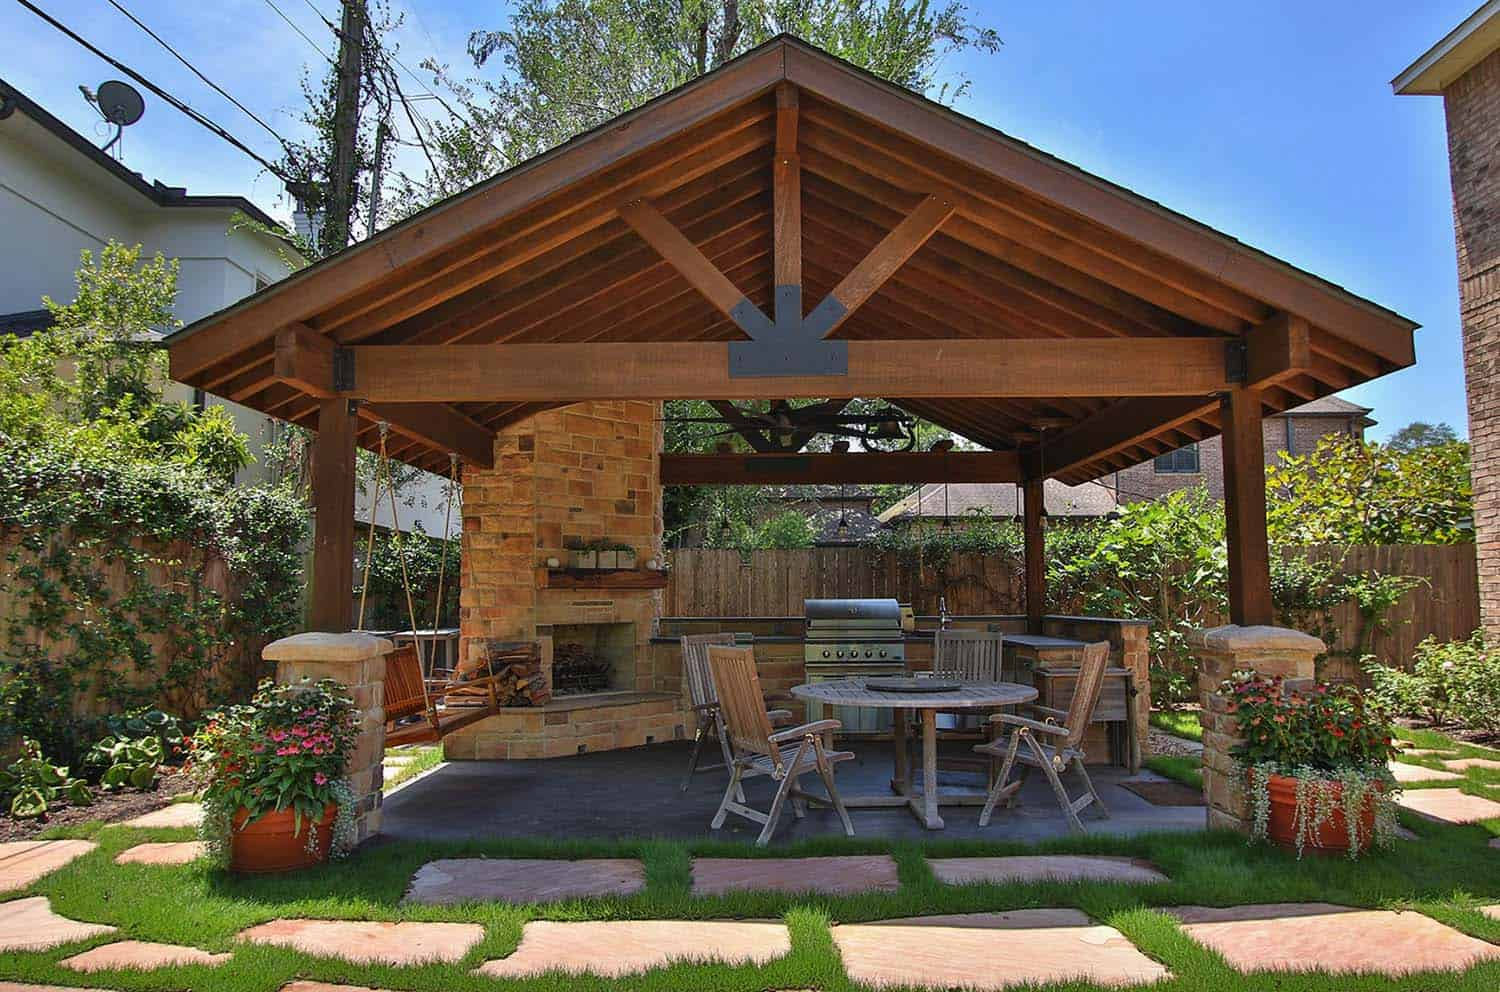 Beautify Your Exterior Of Home With Outdoor Living Space on Outdoor Living Buildings id=48027